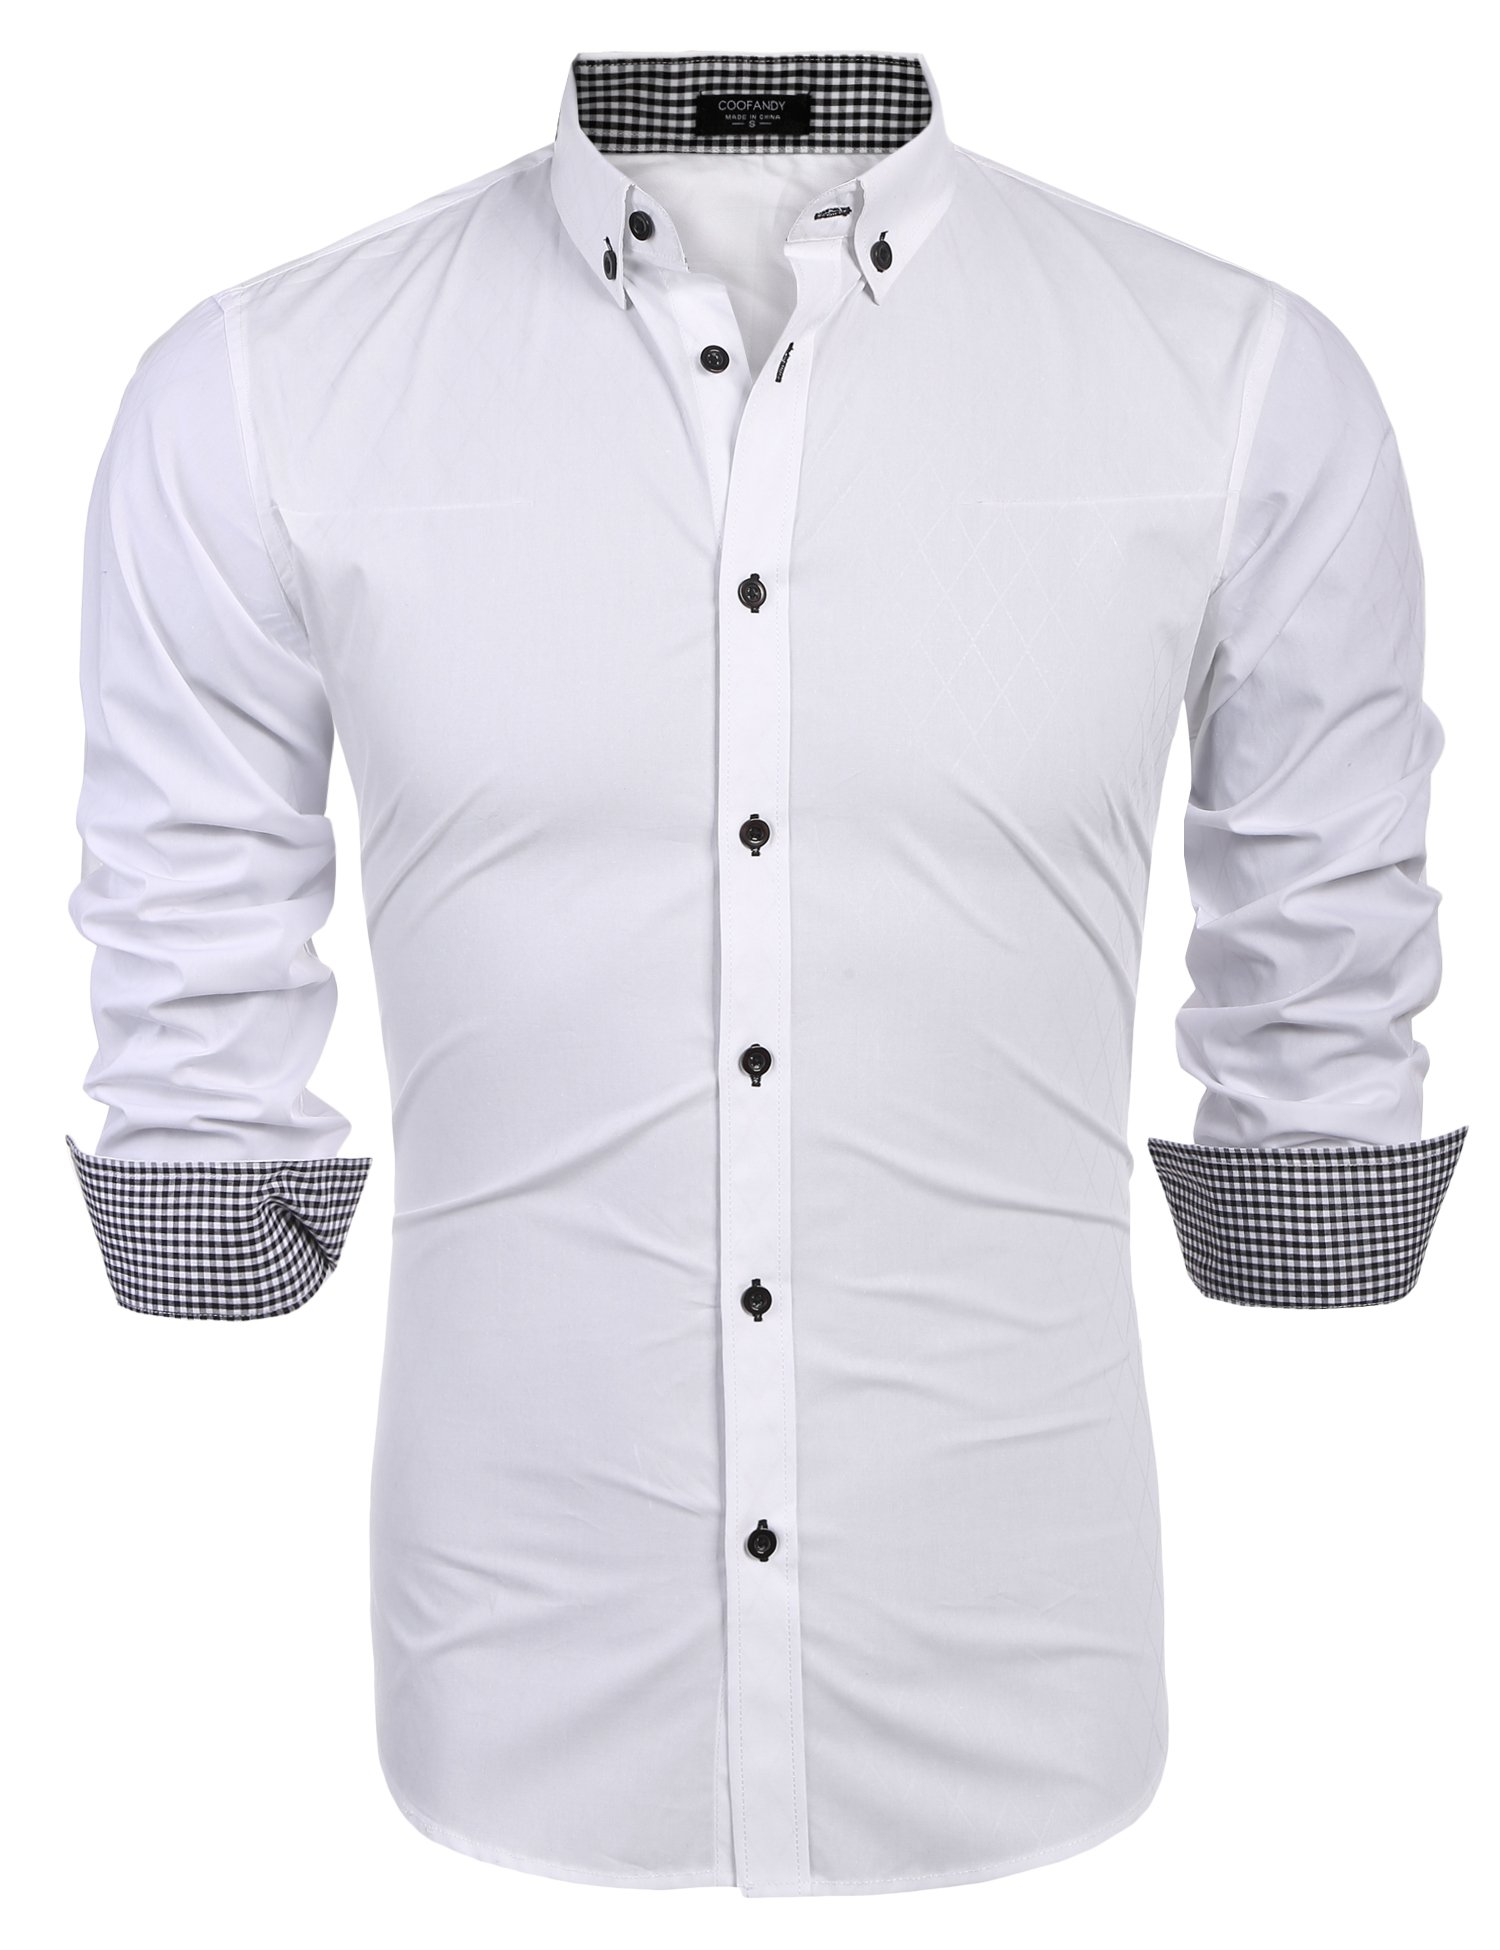 COOFANDY Men's Business Stylish Slim Fit Long Sleeve Casual Dress Shirt (S, White)